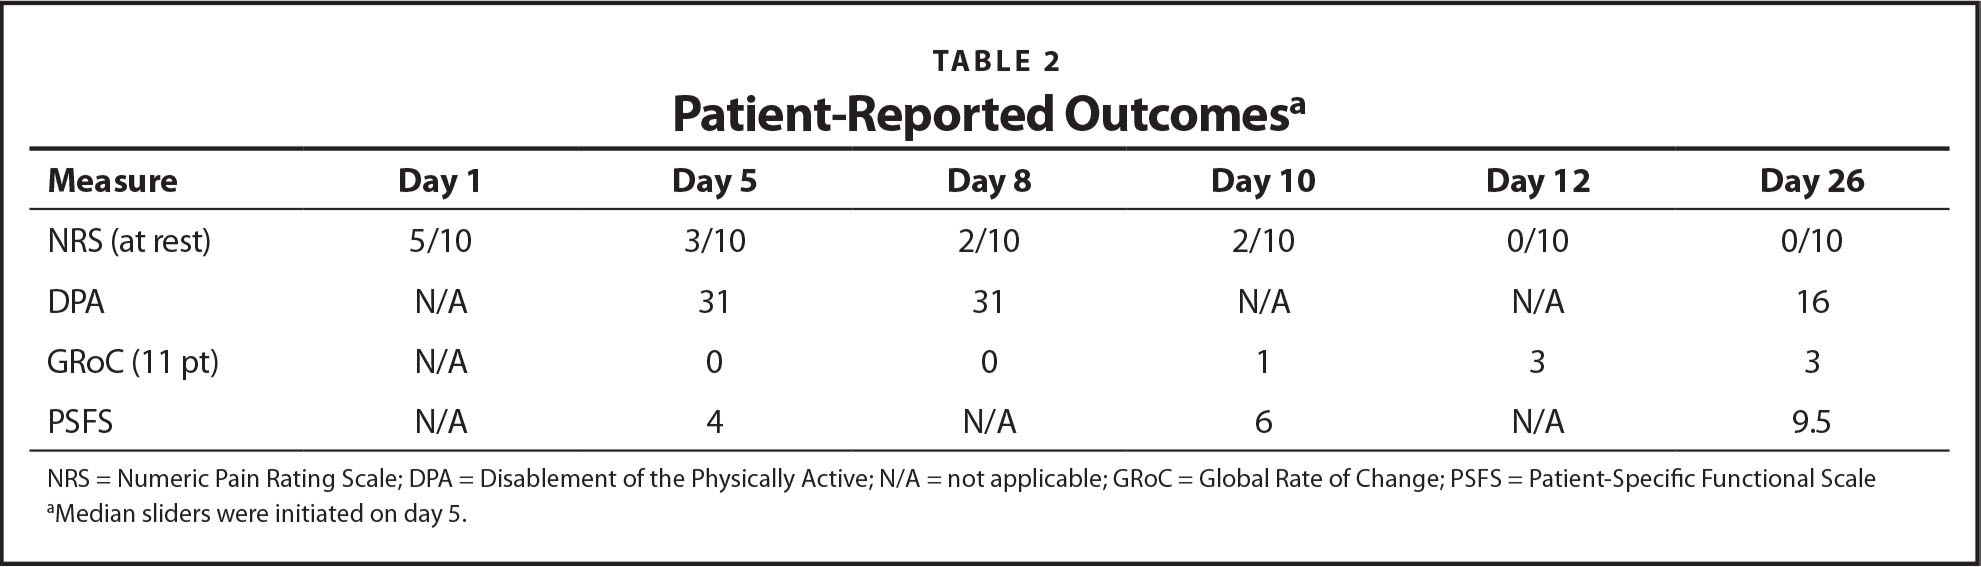 Patient-Reported Outcomesa